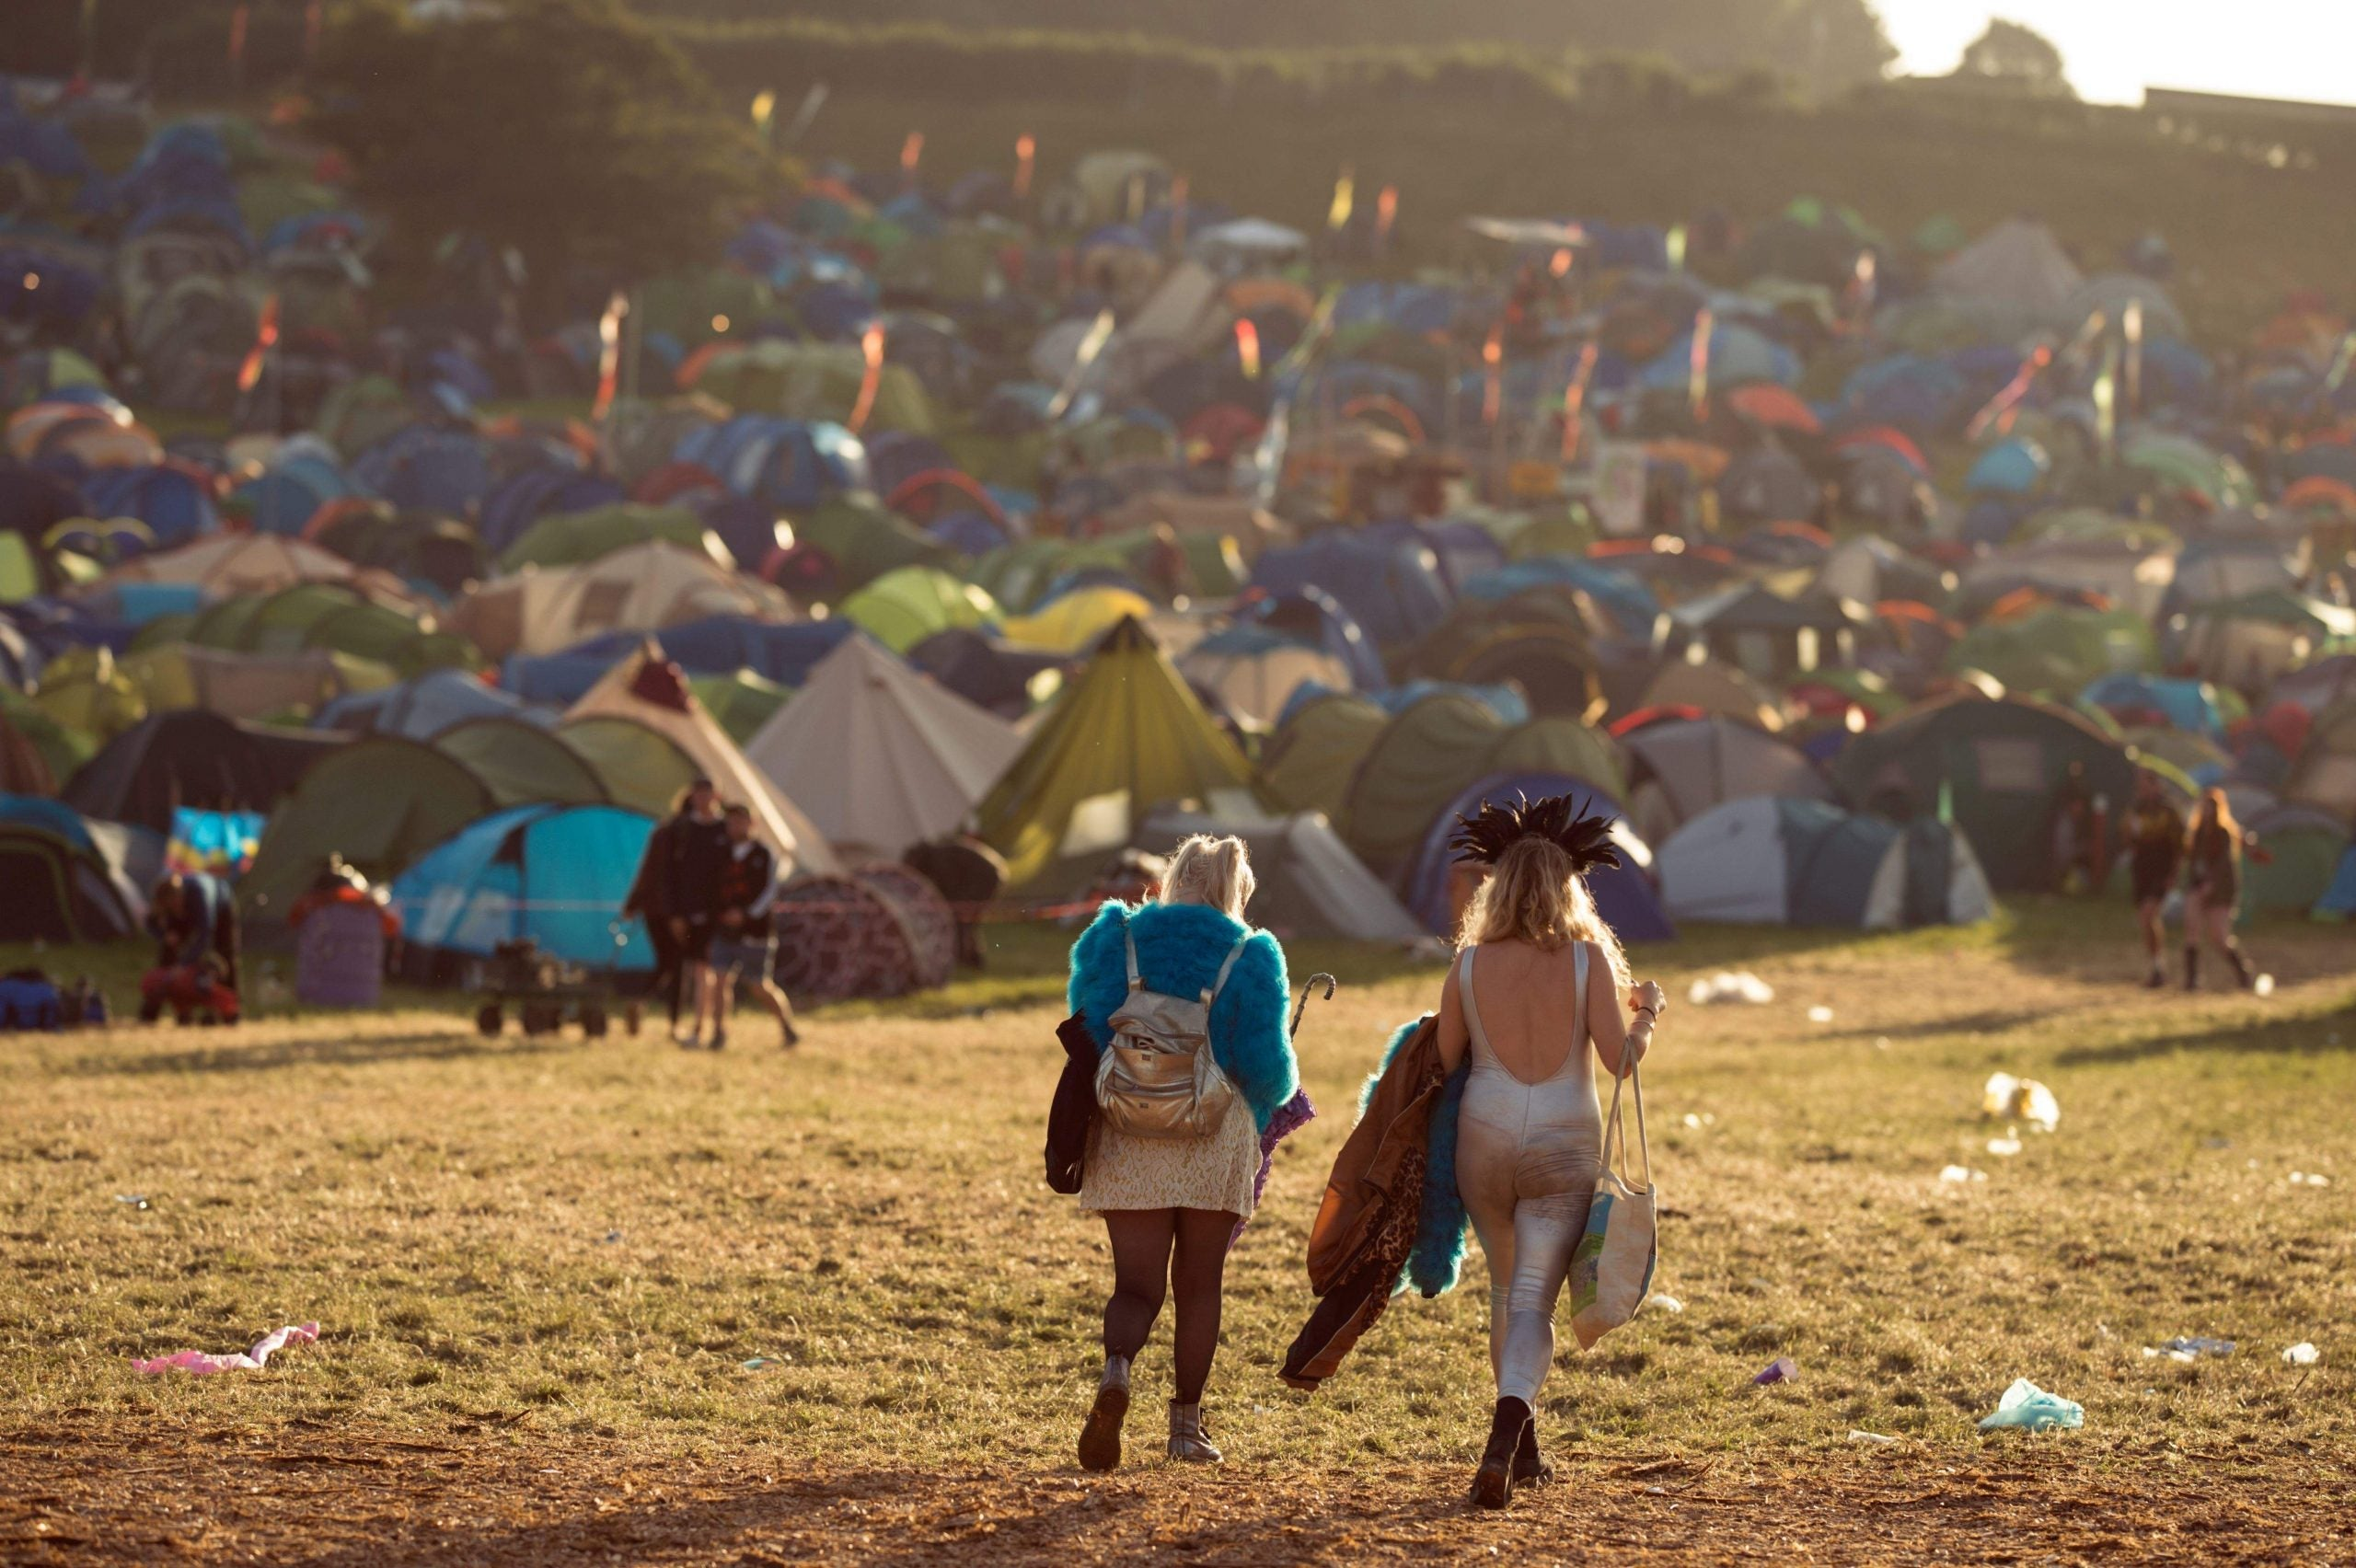 An open letter to Glastonbury, from a victim